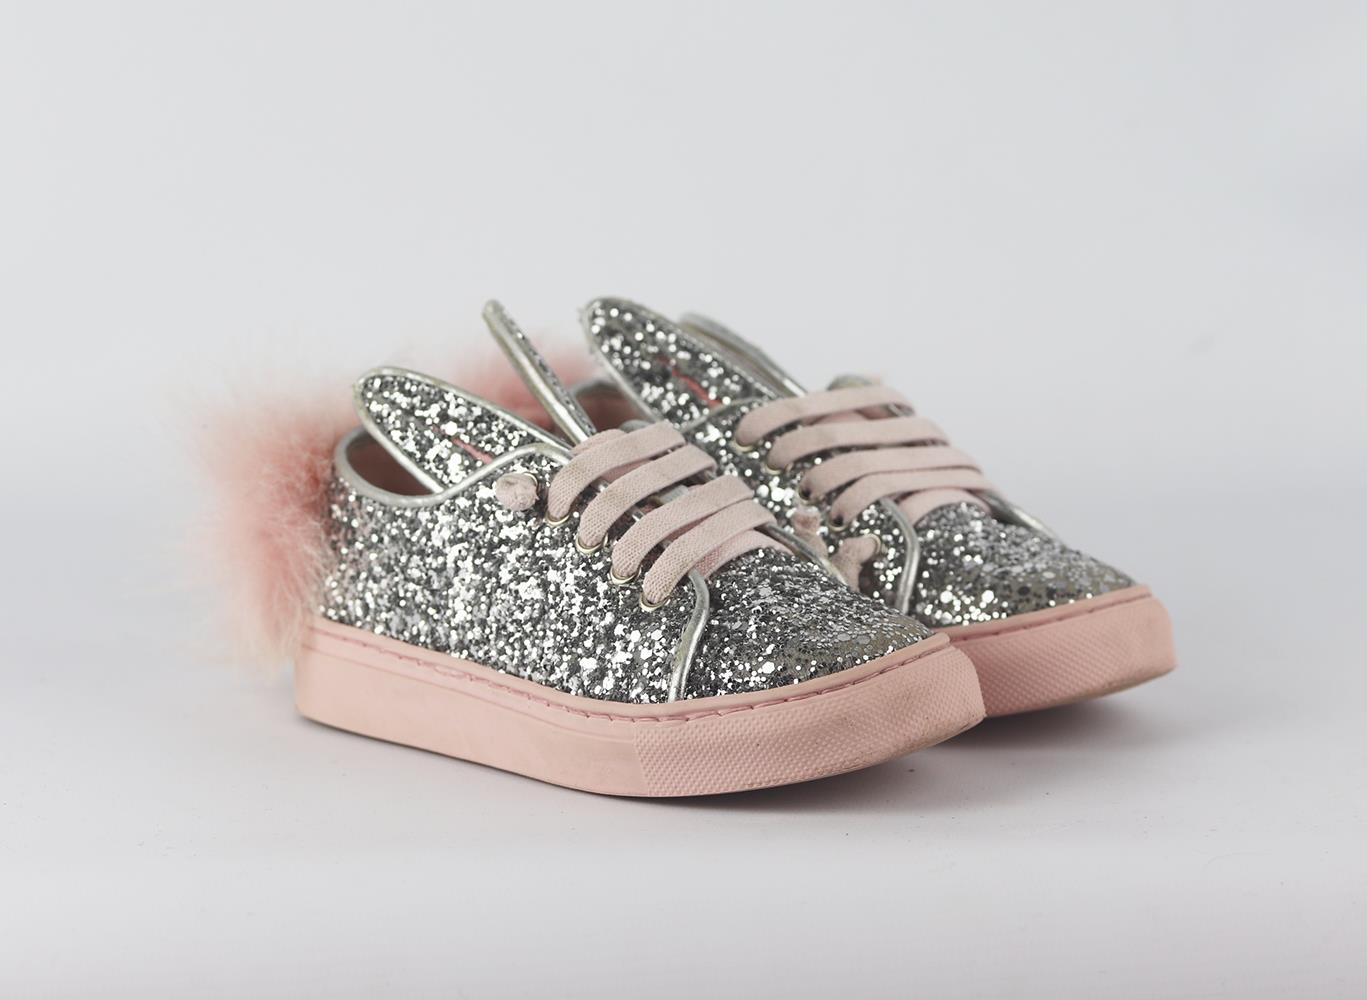 MINNIA PARIKA KIDS GIRLS BUNNY GLITTER SNEAKERS EU 26 UK 8.5